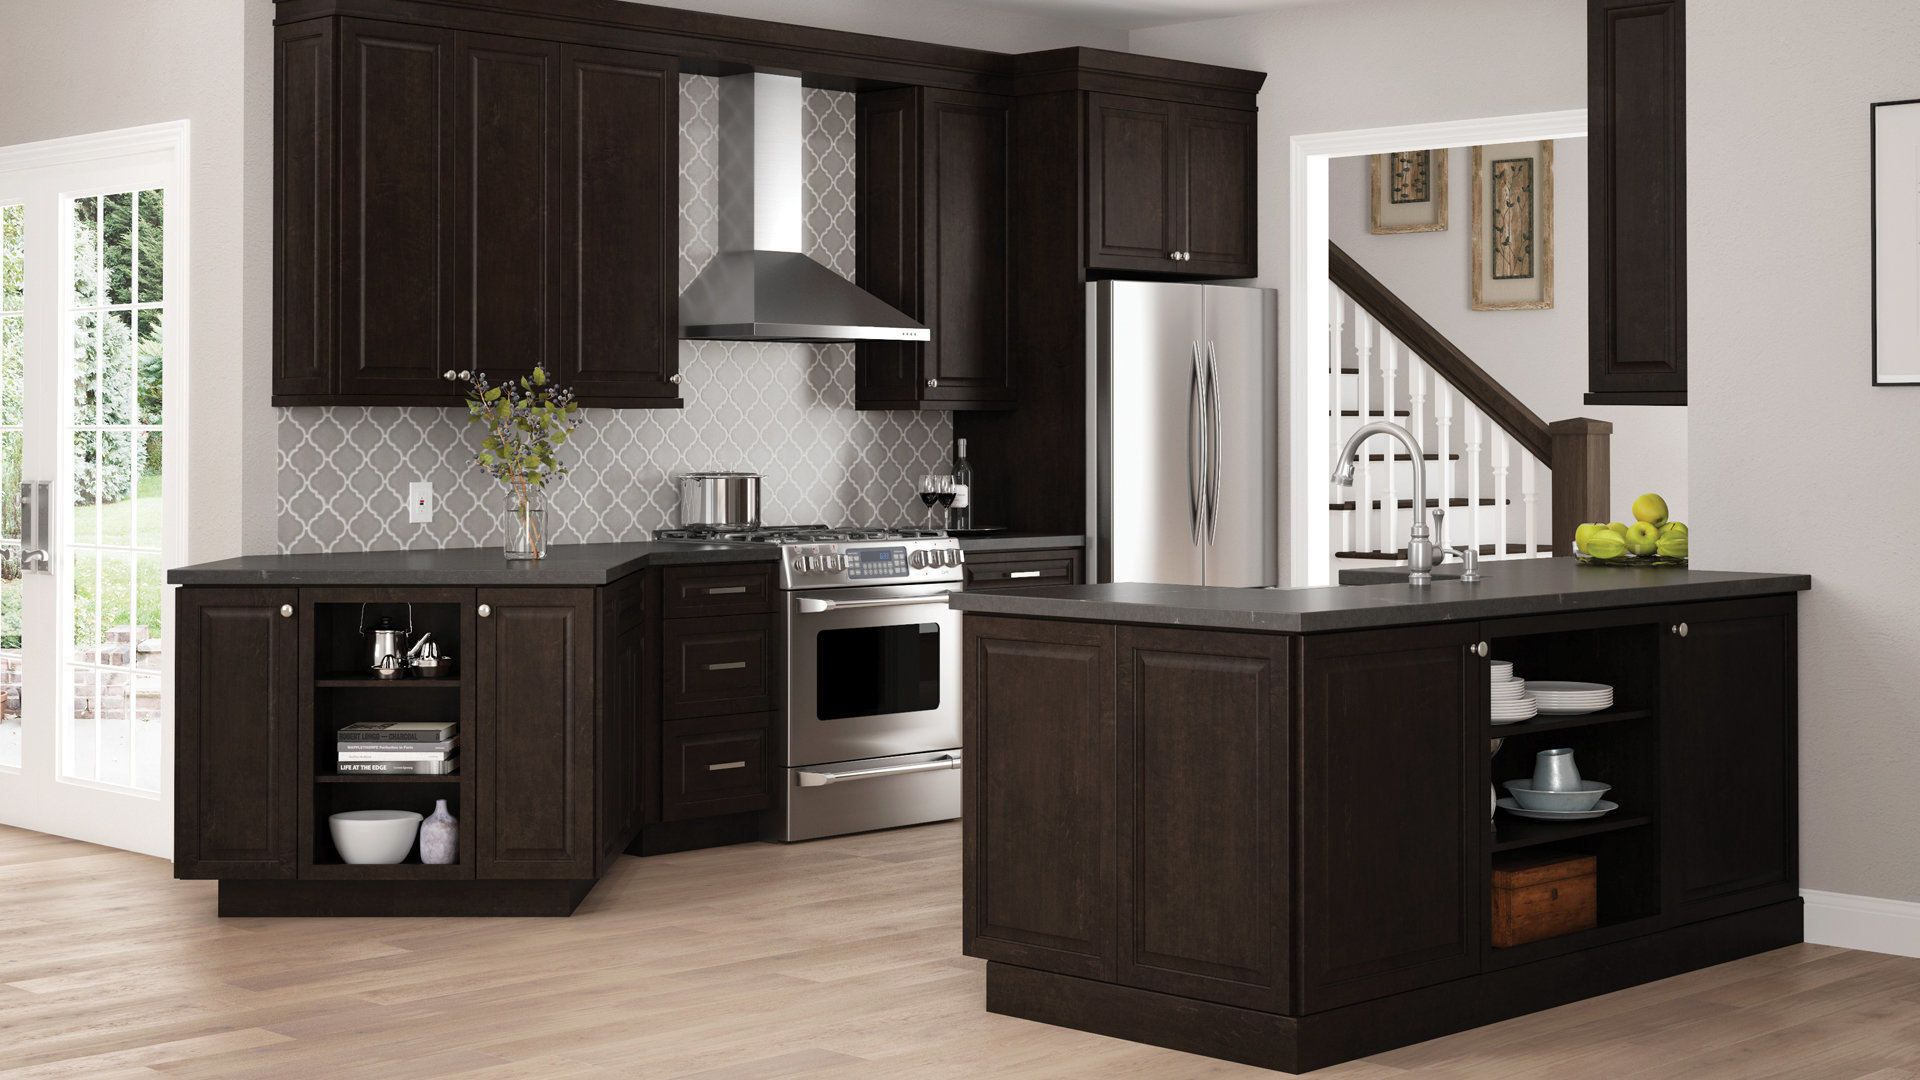 Shop Our Kitchen Cabinets Department To Customize Your Gretna Wall